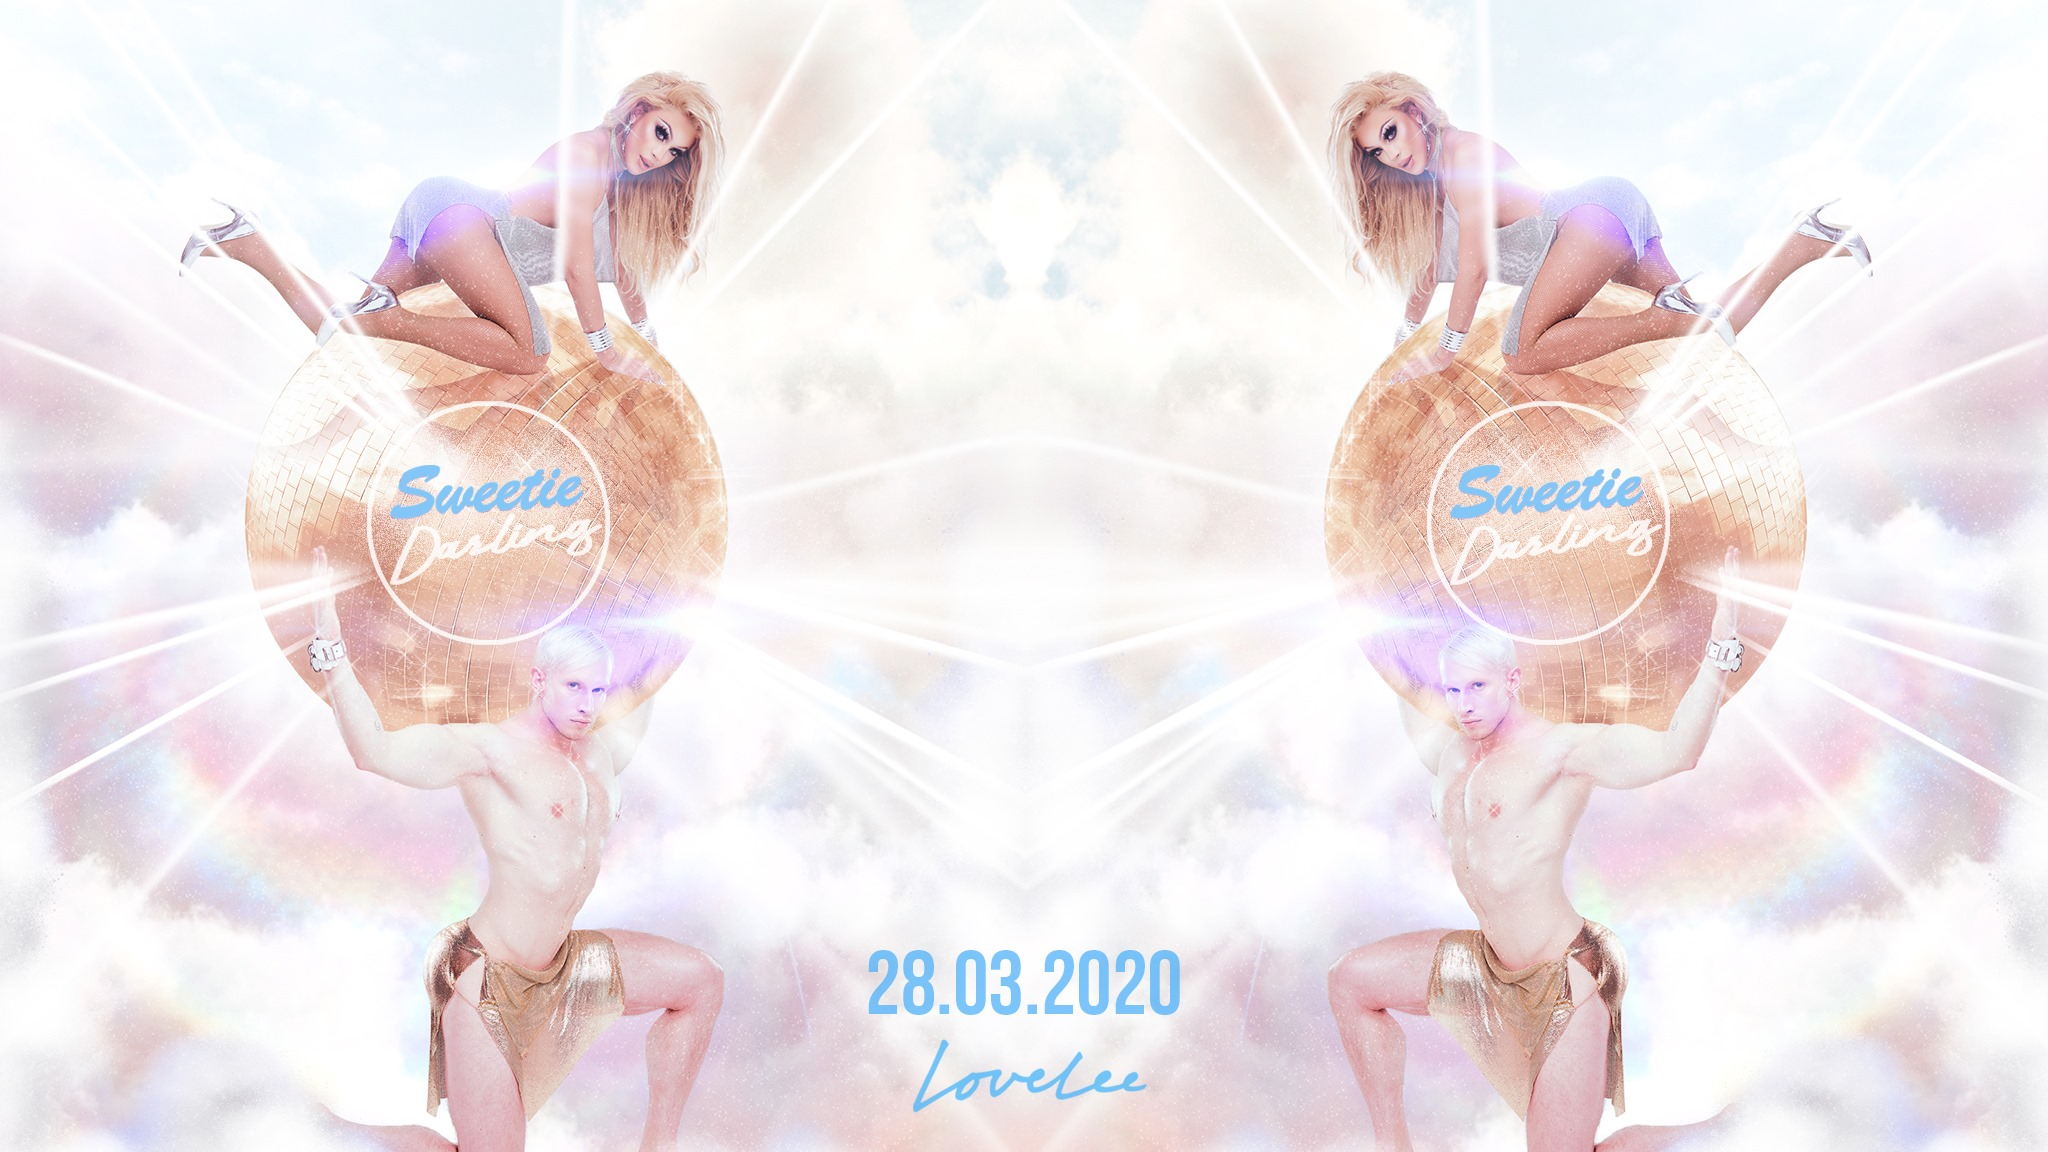 Sweetie Darling - 28 March 2020 - Lovelee Amsterdam - LGBT Dance Party